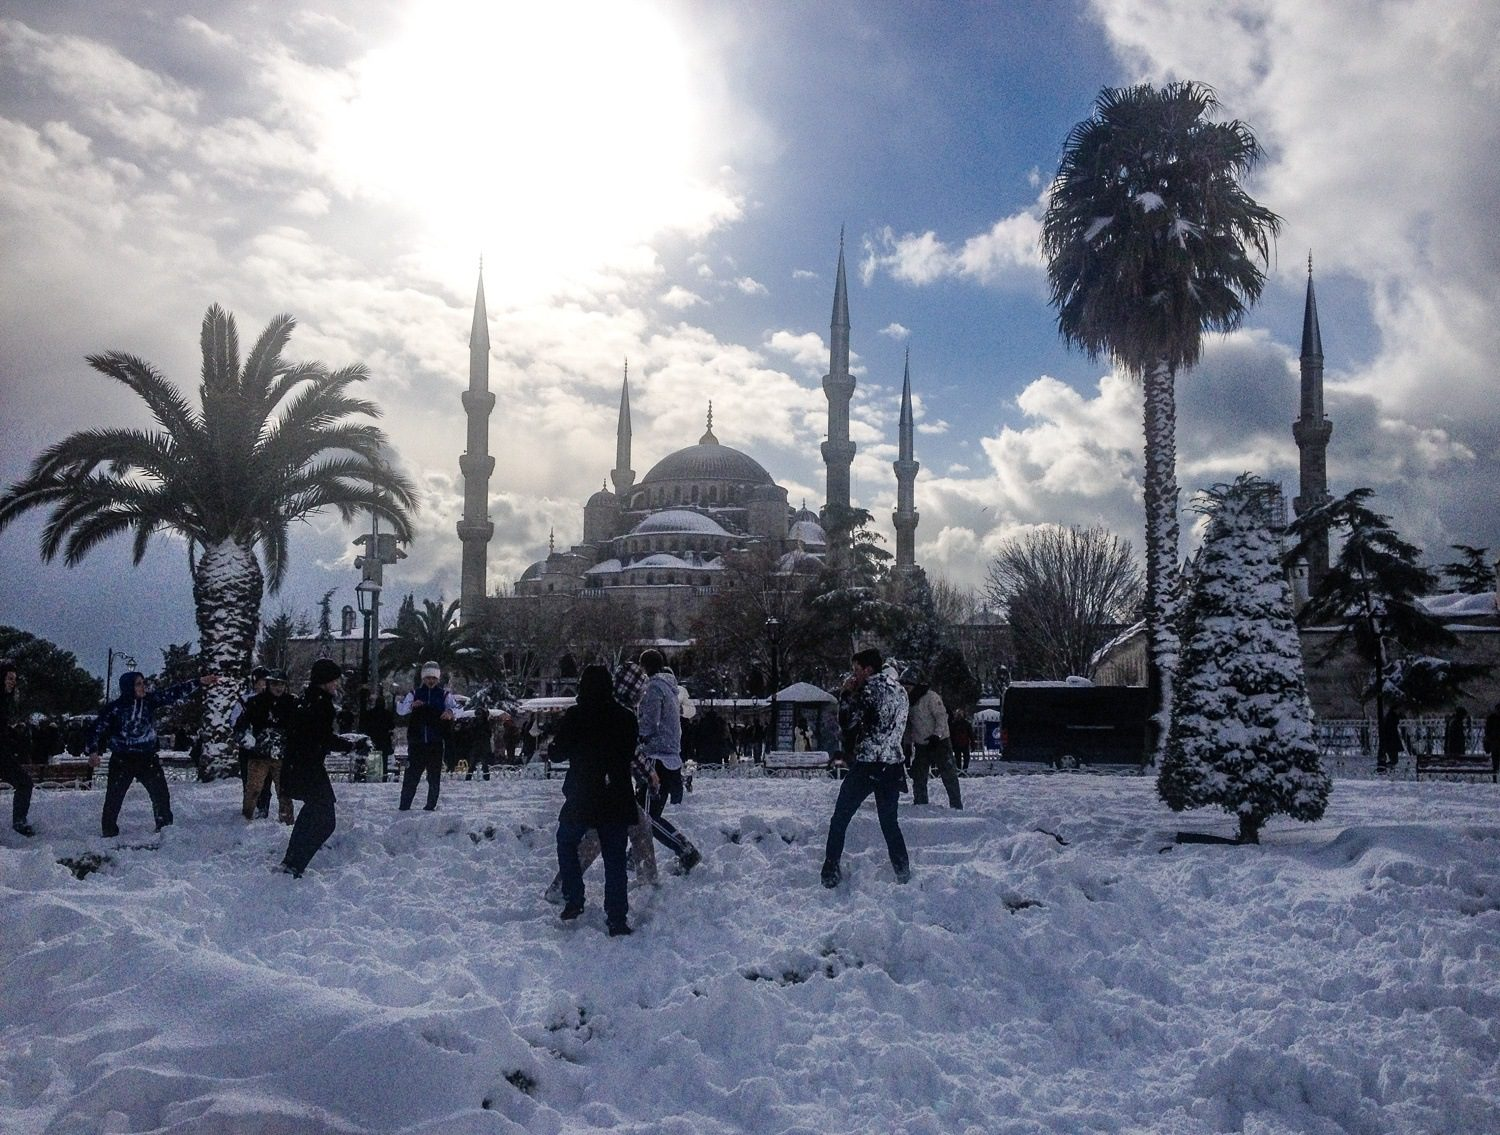 A rare snowfall at the Blue Mosque in Istanbul, Turkey, January 2016.